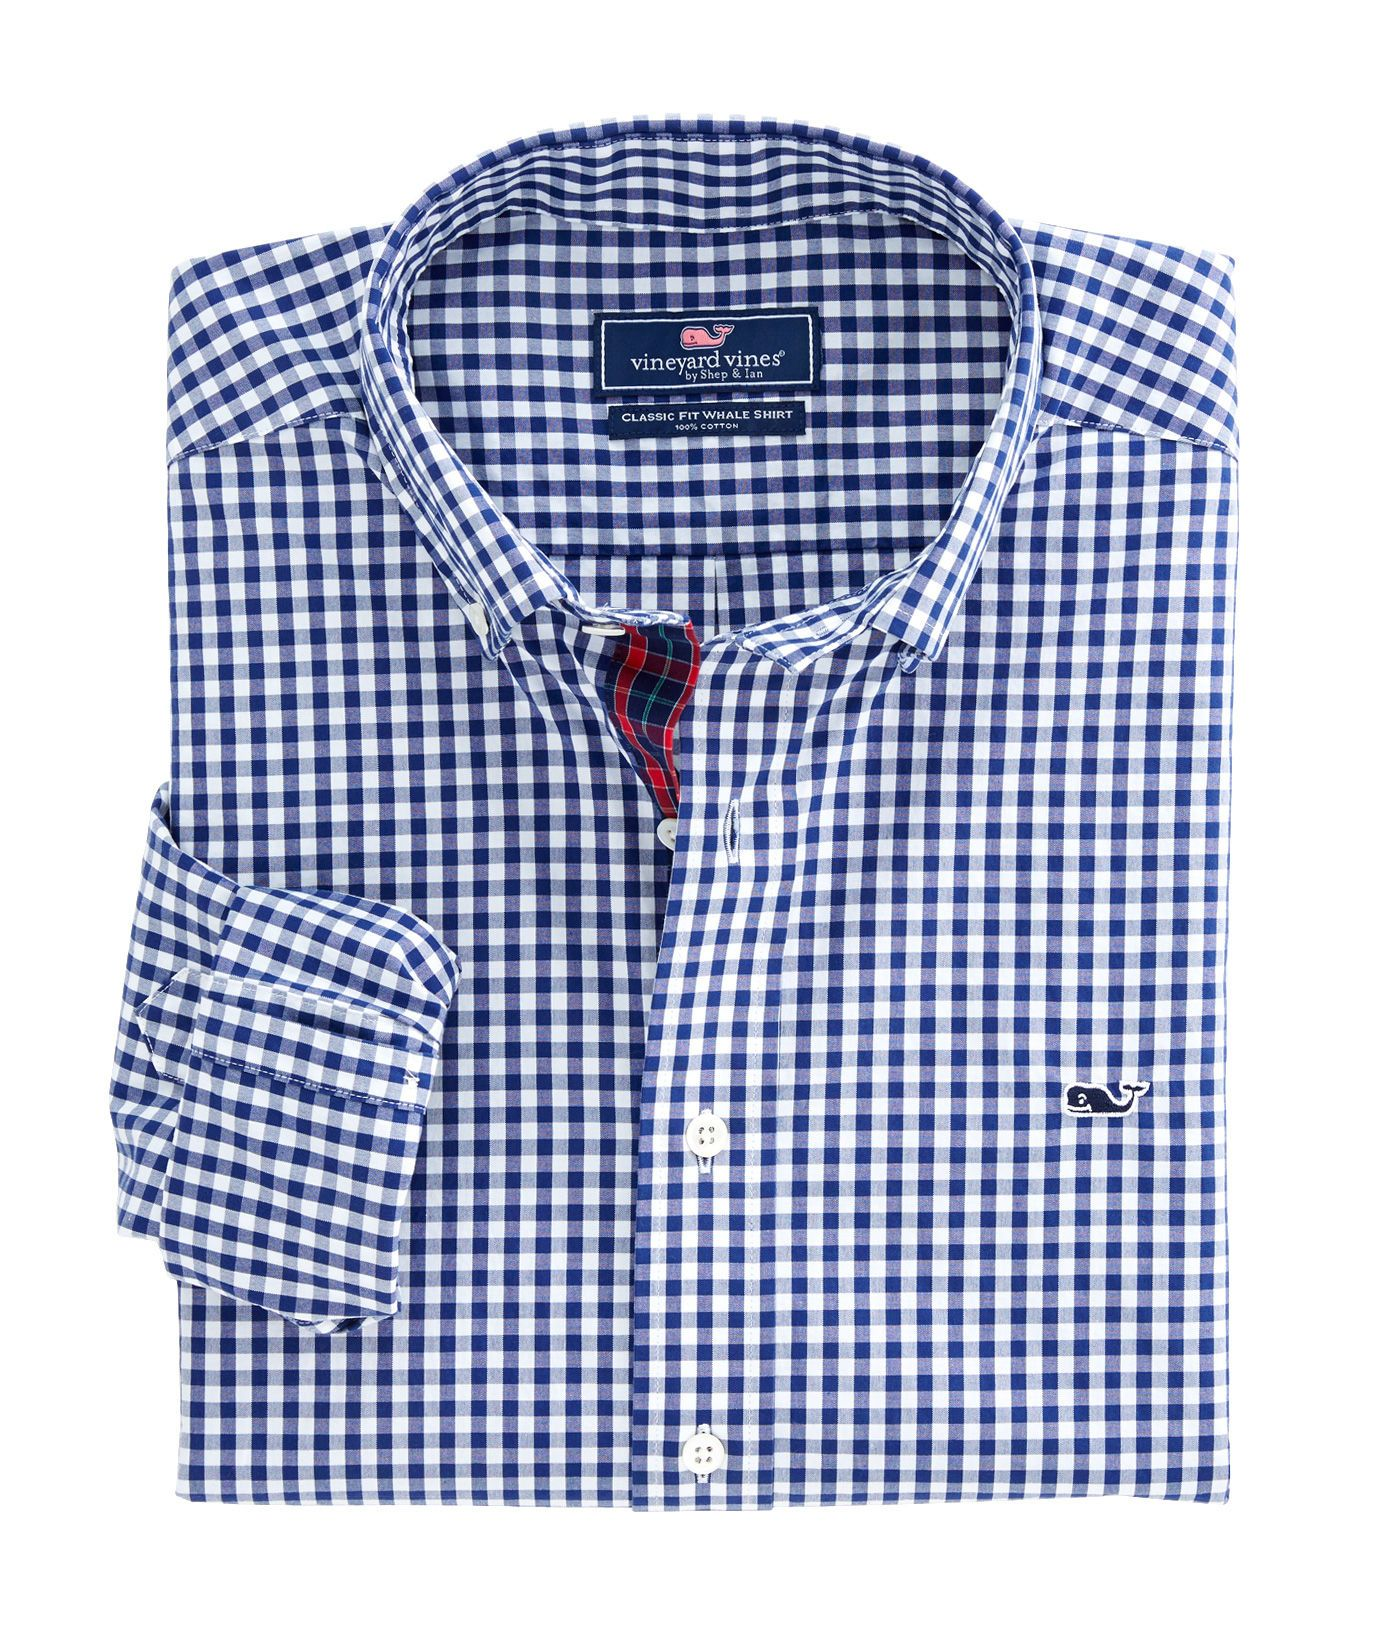 da38f6bf Shop New River Plaid Classic Whale Shirt at vineyard vines | The ...